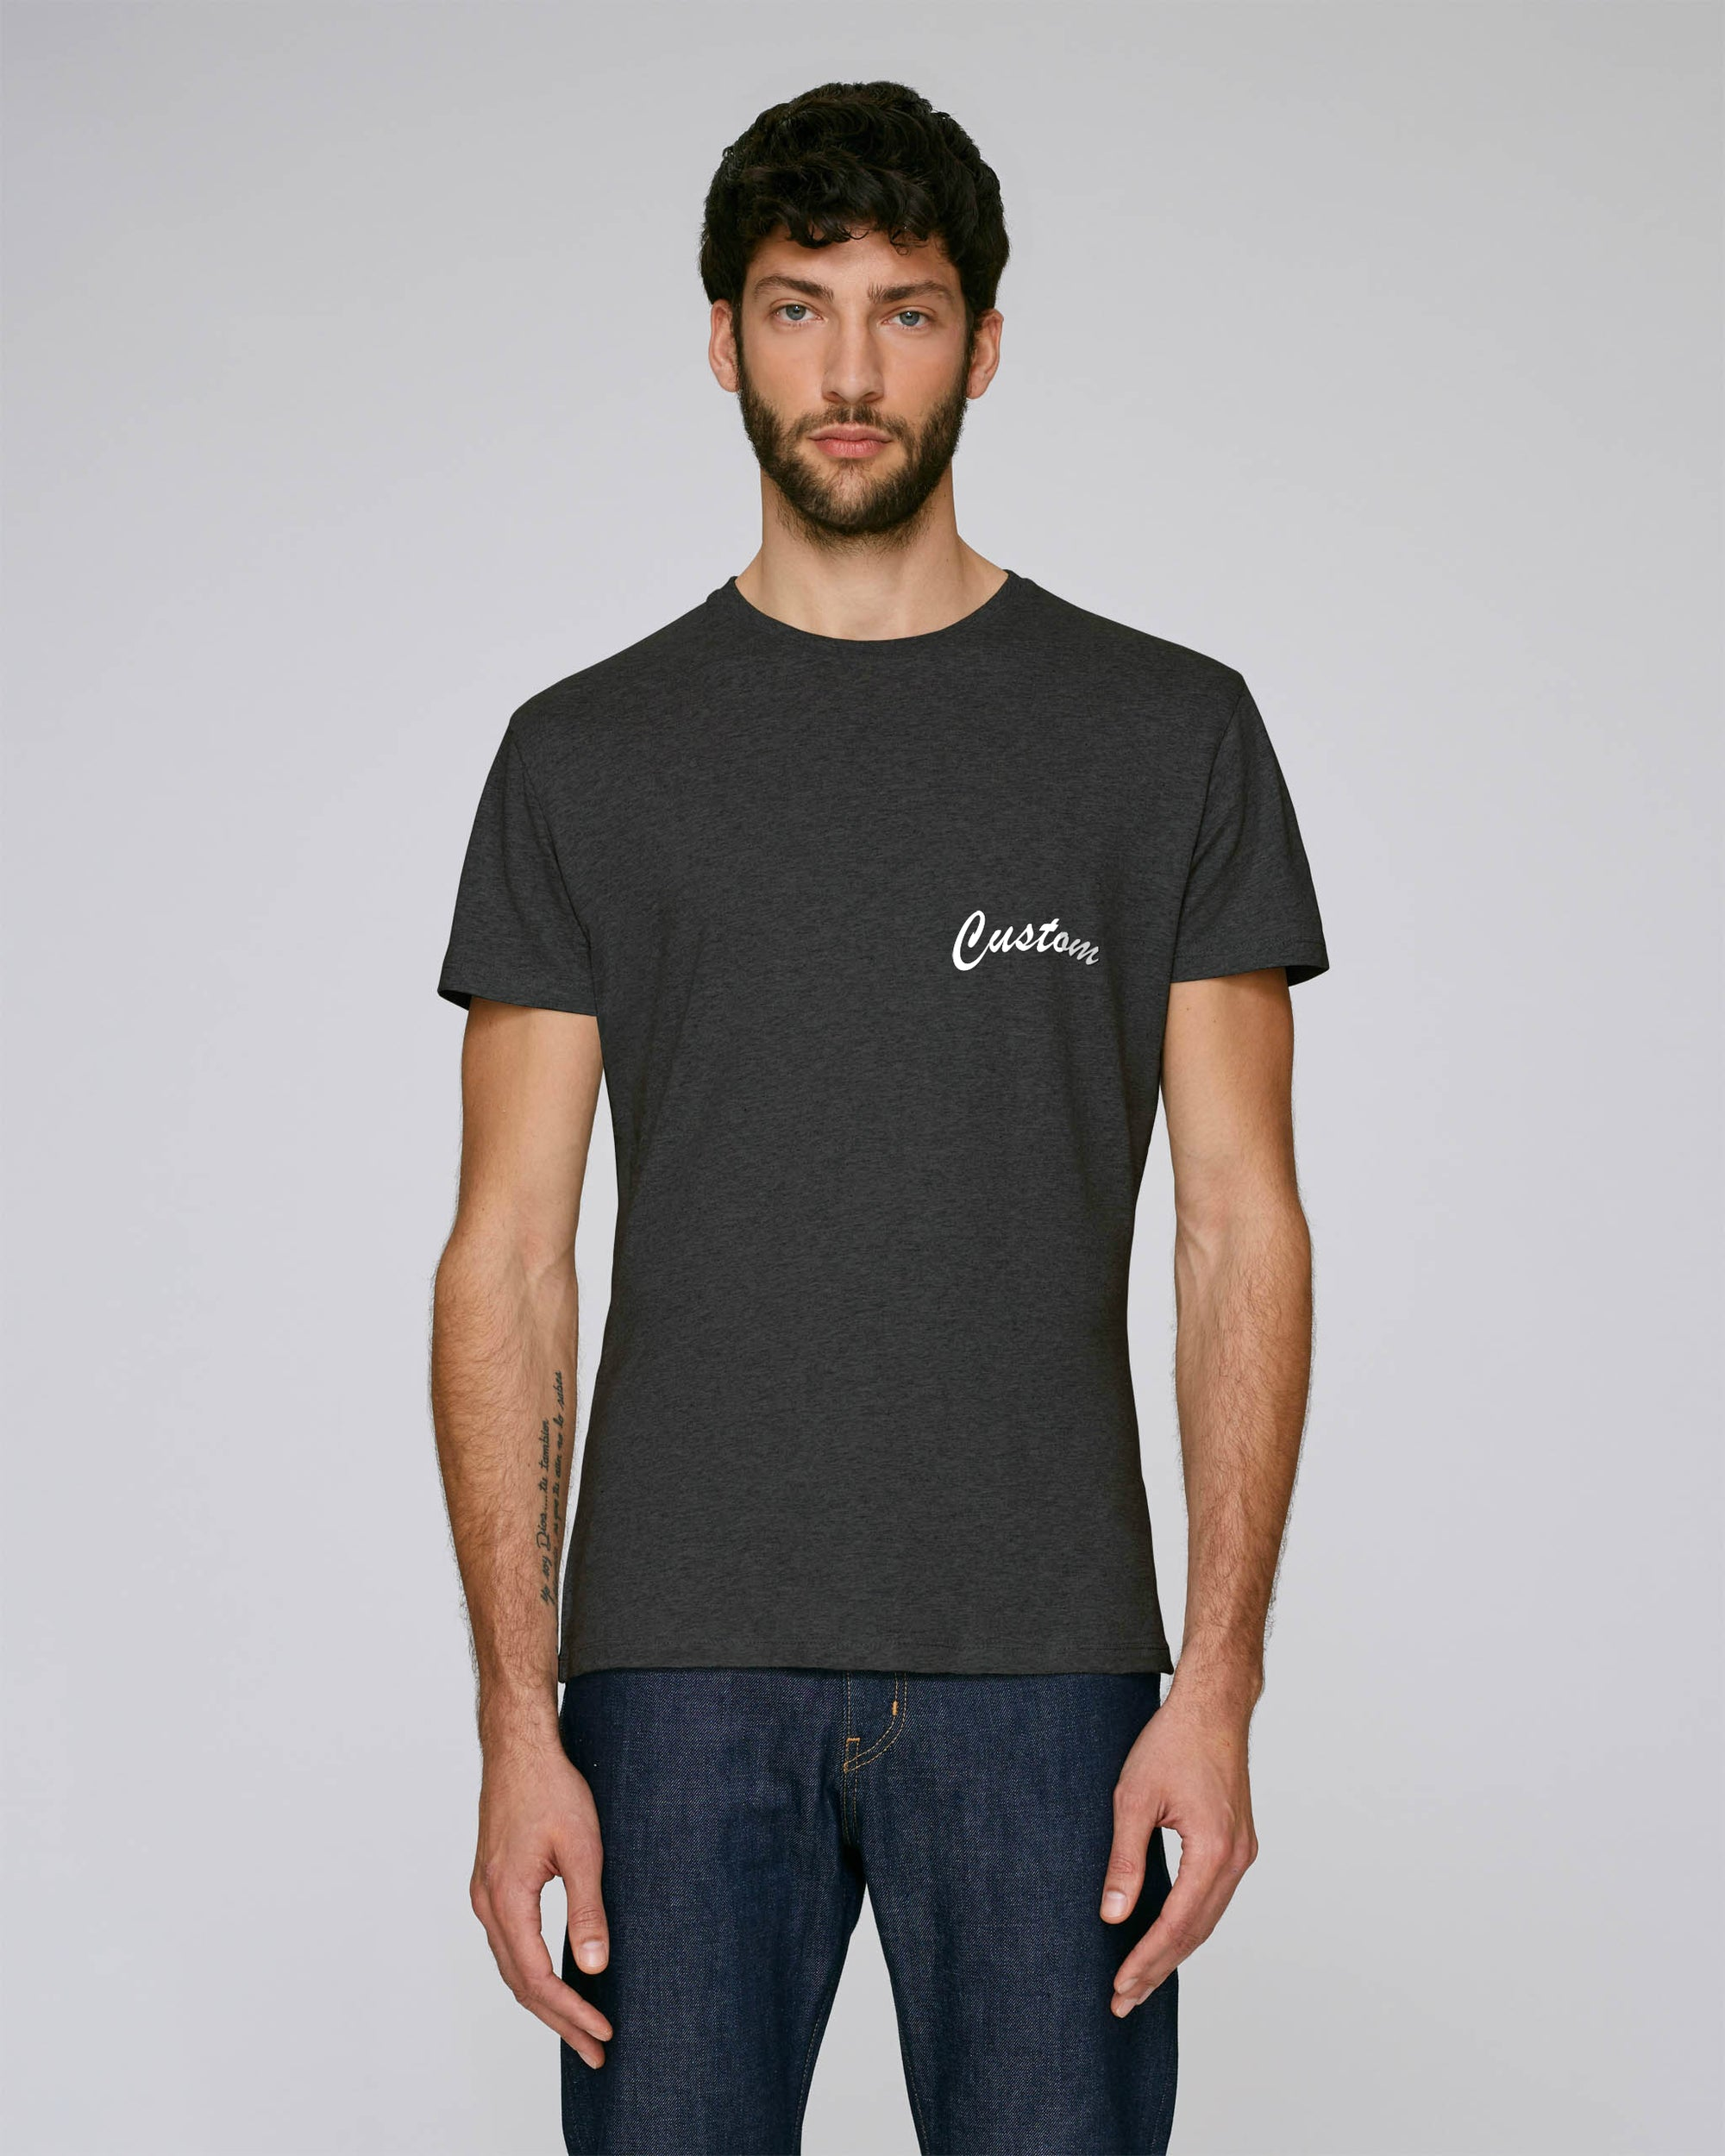 MEN'S FITTED ORGANIC COTTON 'FEELS' T-SHIRT - customisable left chest embroidery